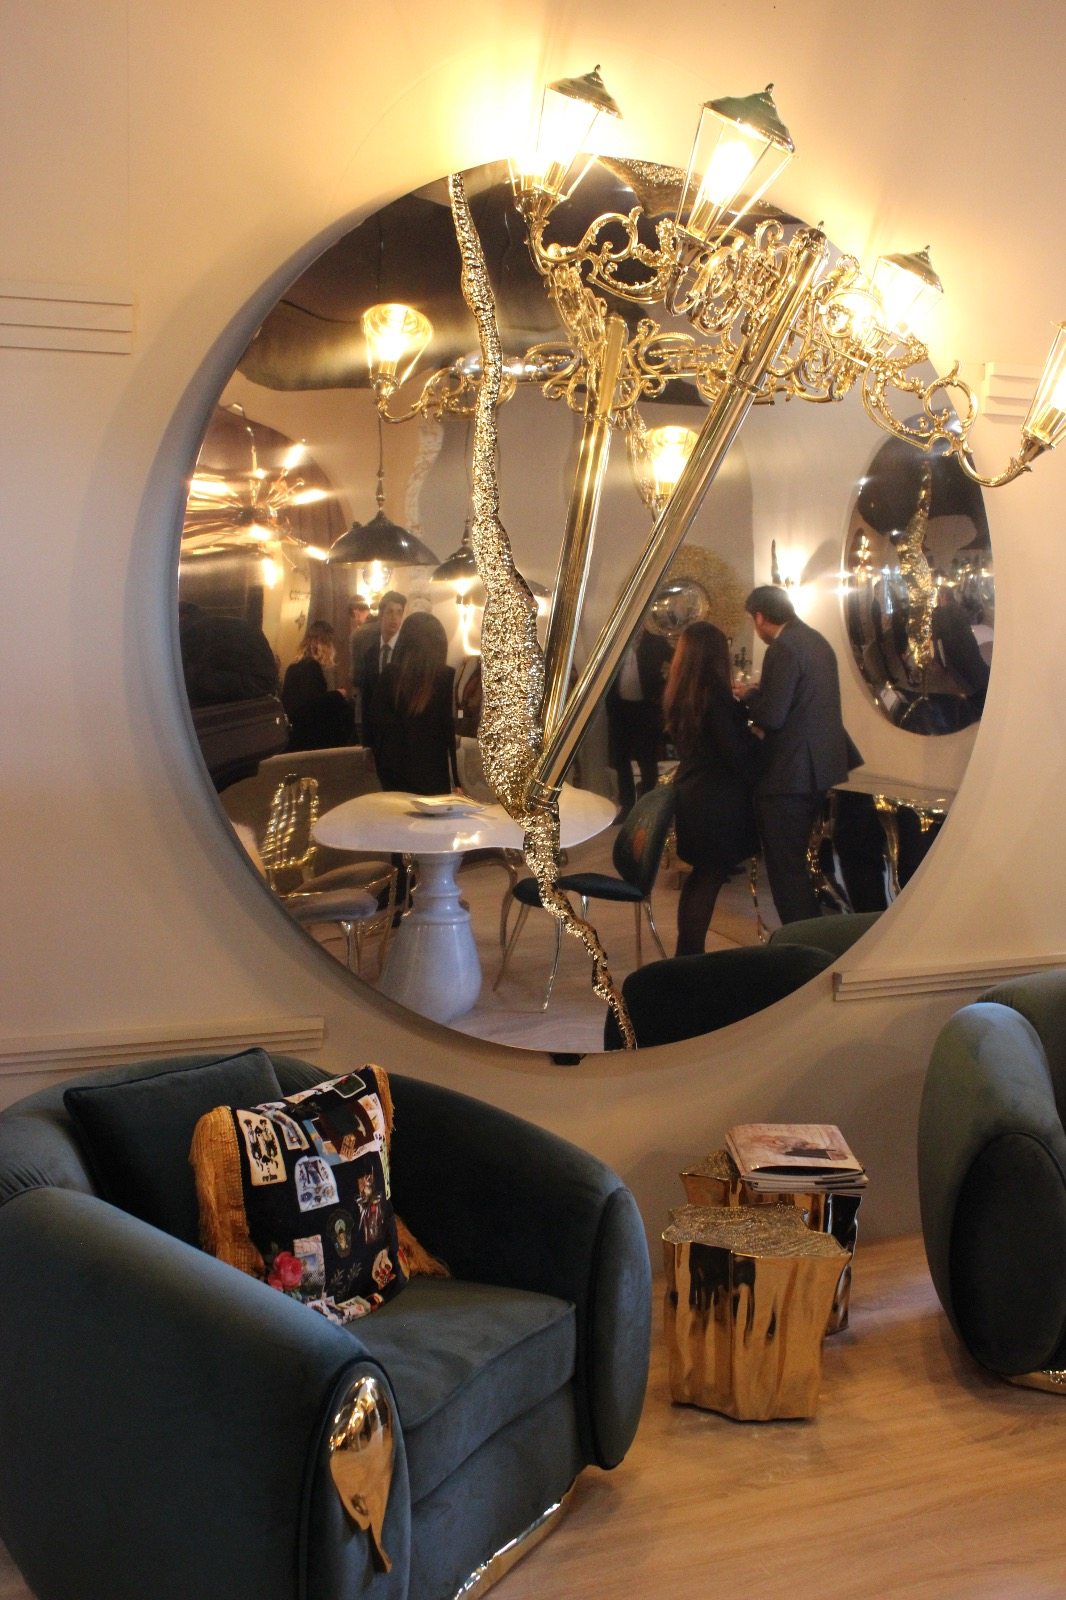 Maison et Objet2019 – First Highlights from the First Day maison et objet2019 Maison et Objet2019 – First Highlights from the First Day Maison et Objet 2019     First Highlights from the First Day 11